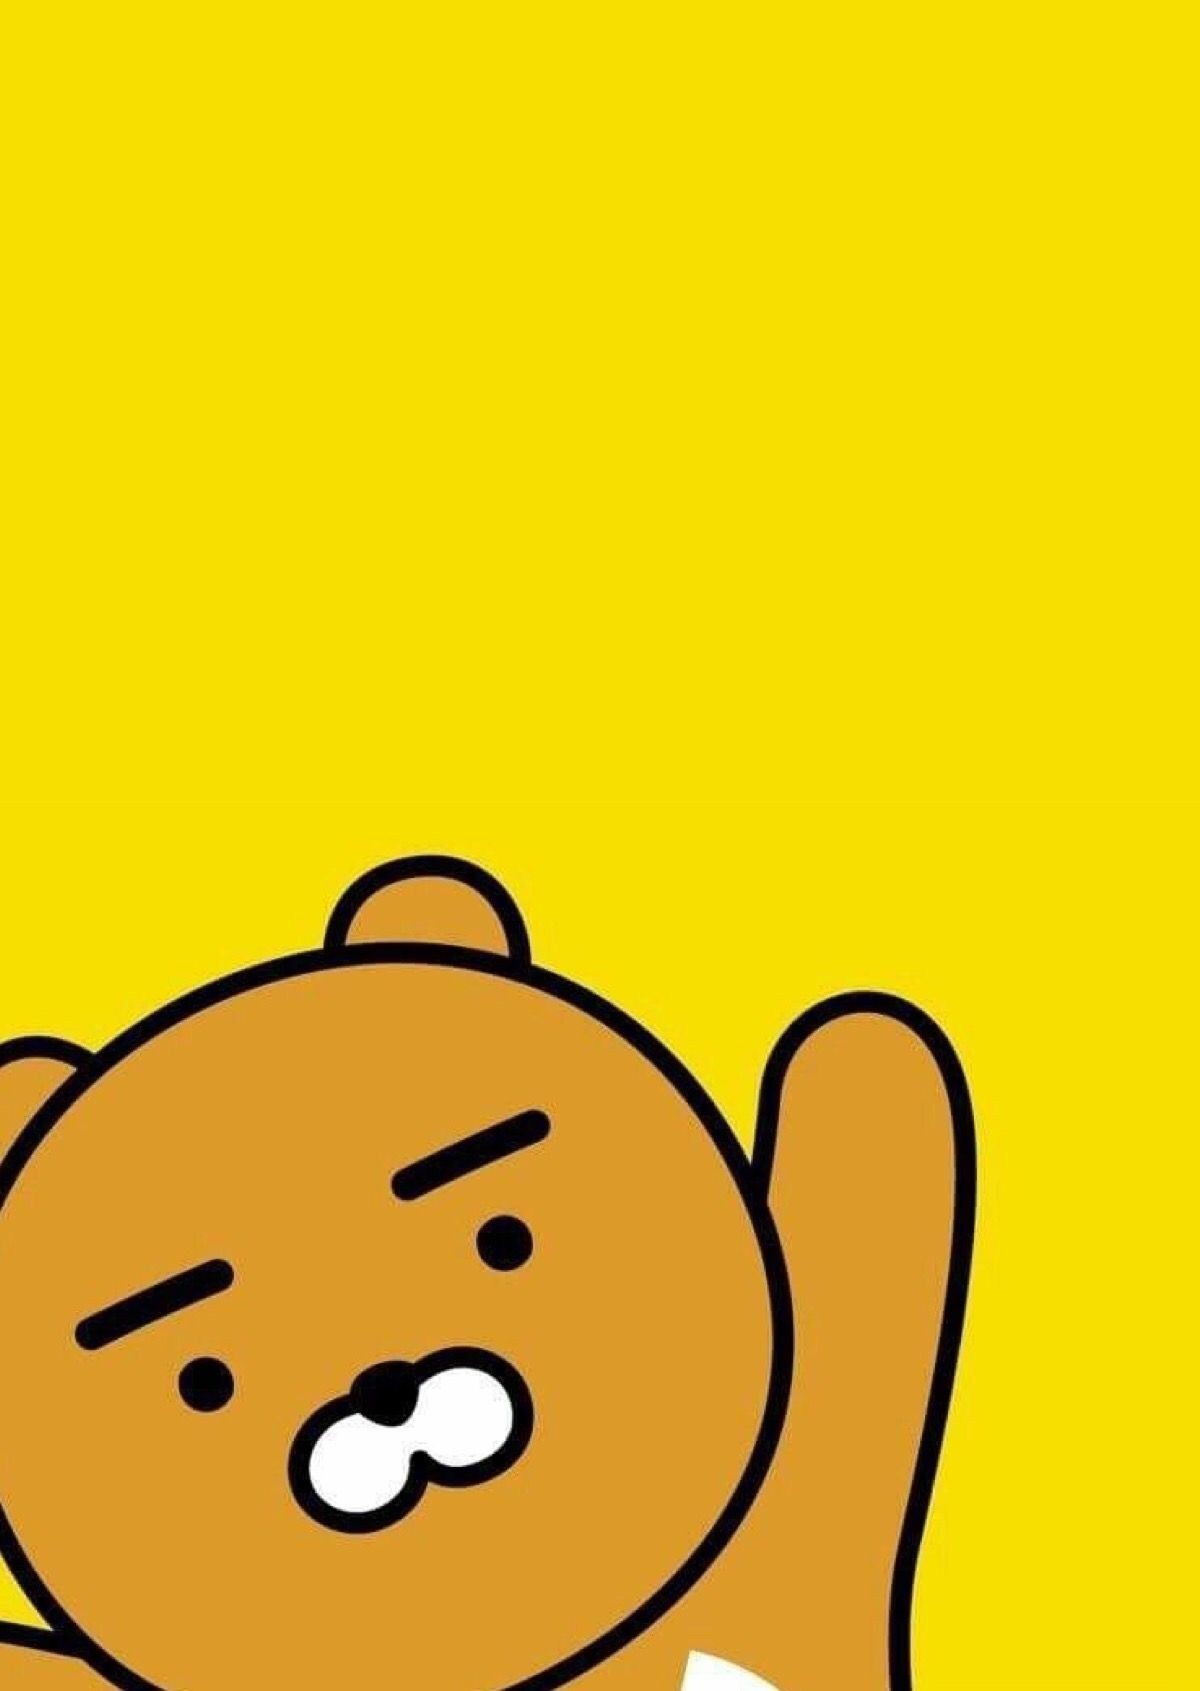 Kakao Friends Iphone Wallpapers Top Free Kakao Friends